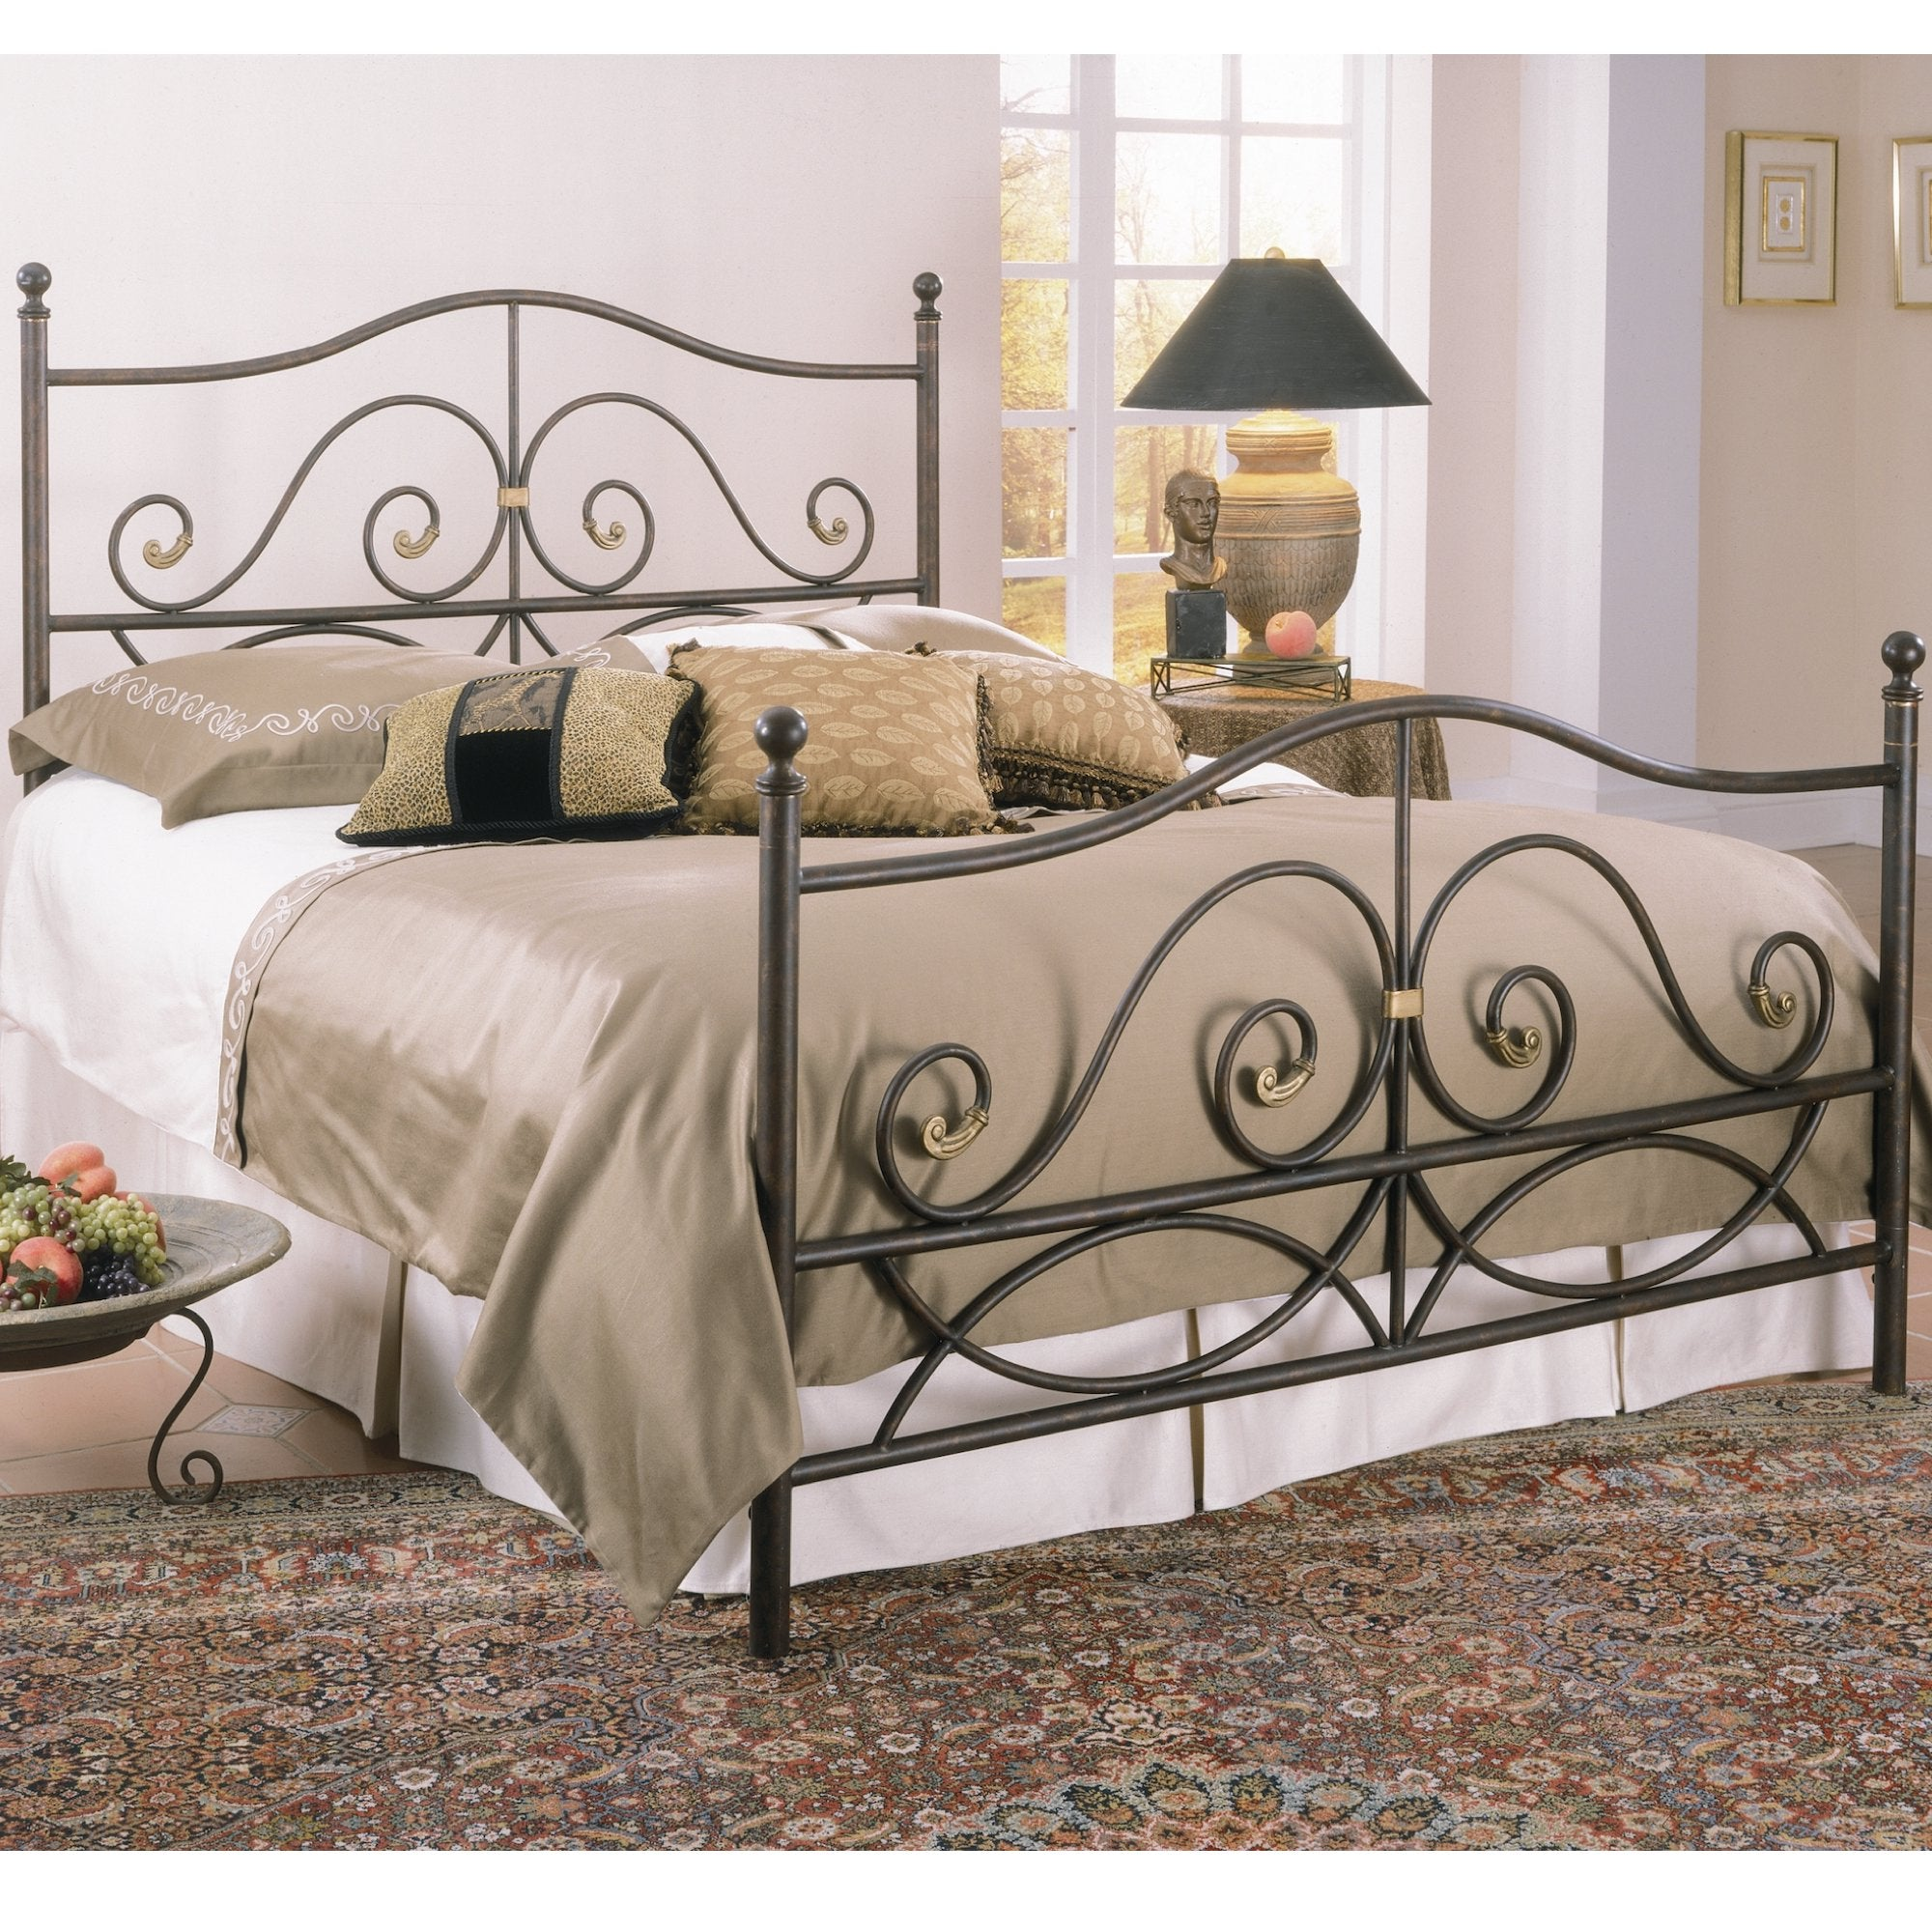 twin metal and rails images beautiful footboard bed headboard frame for